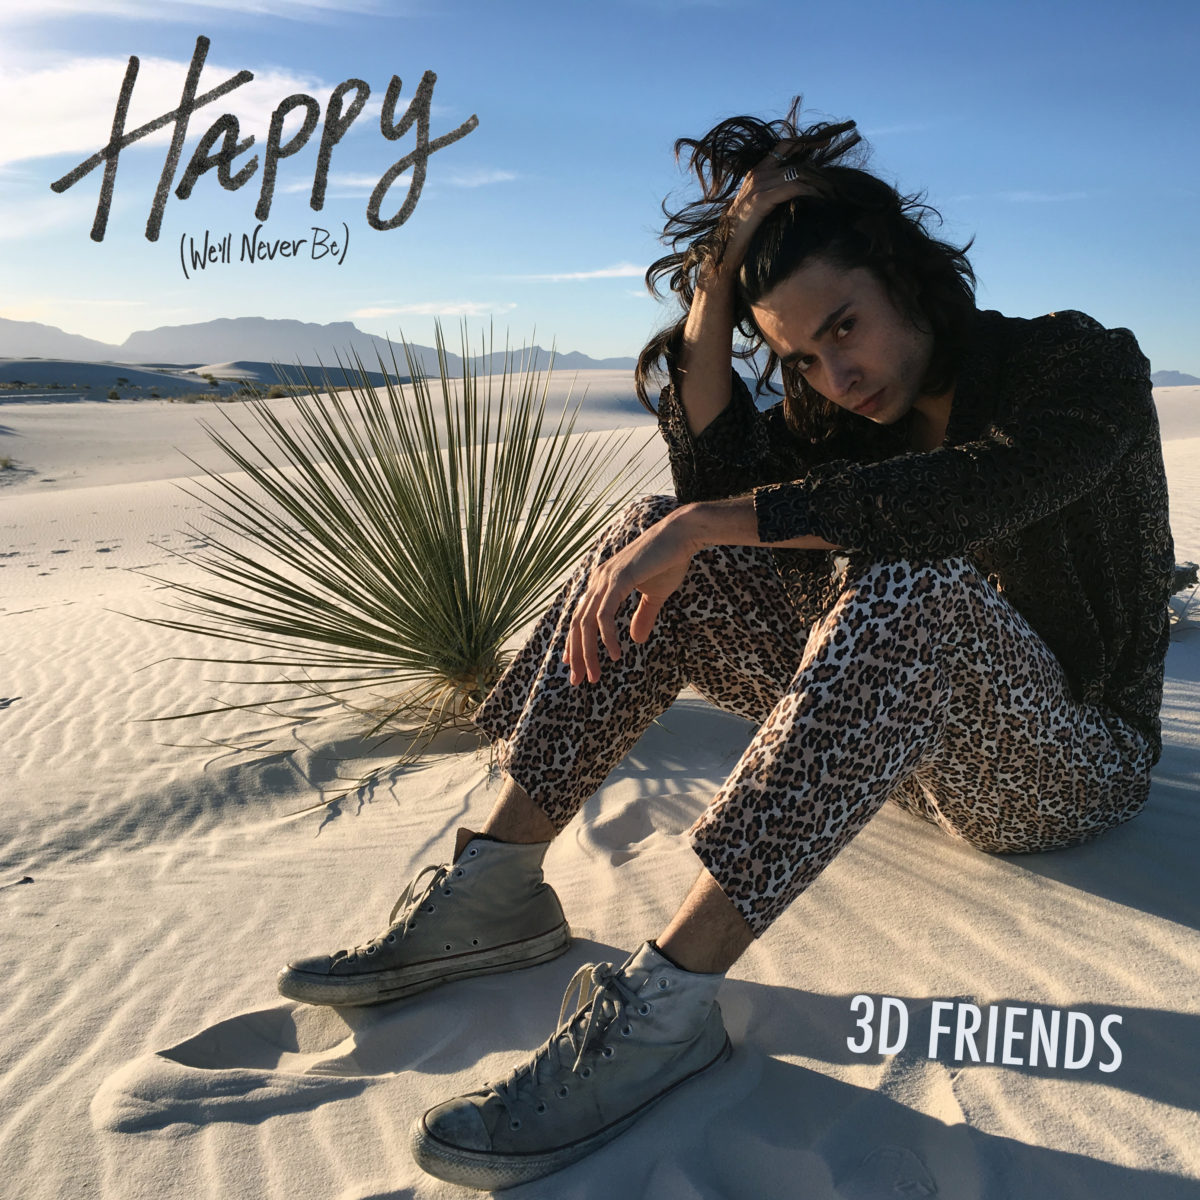 3D Friends – Happy (We'll Never Be)